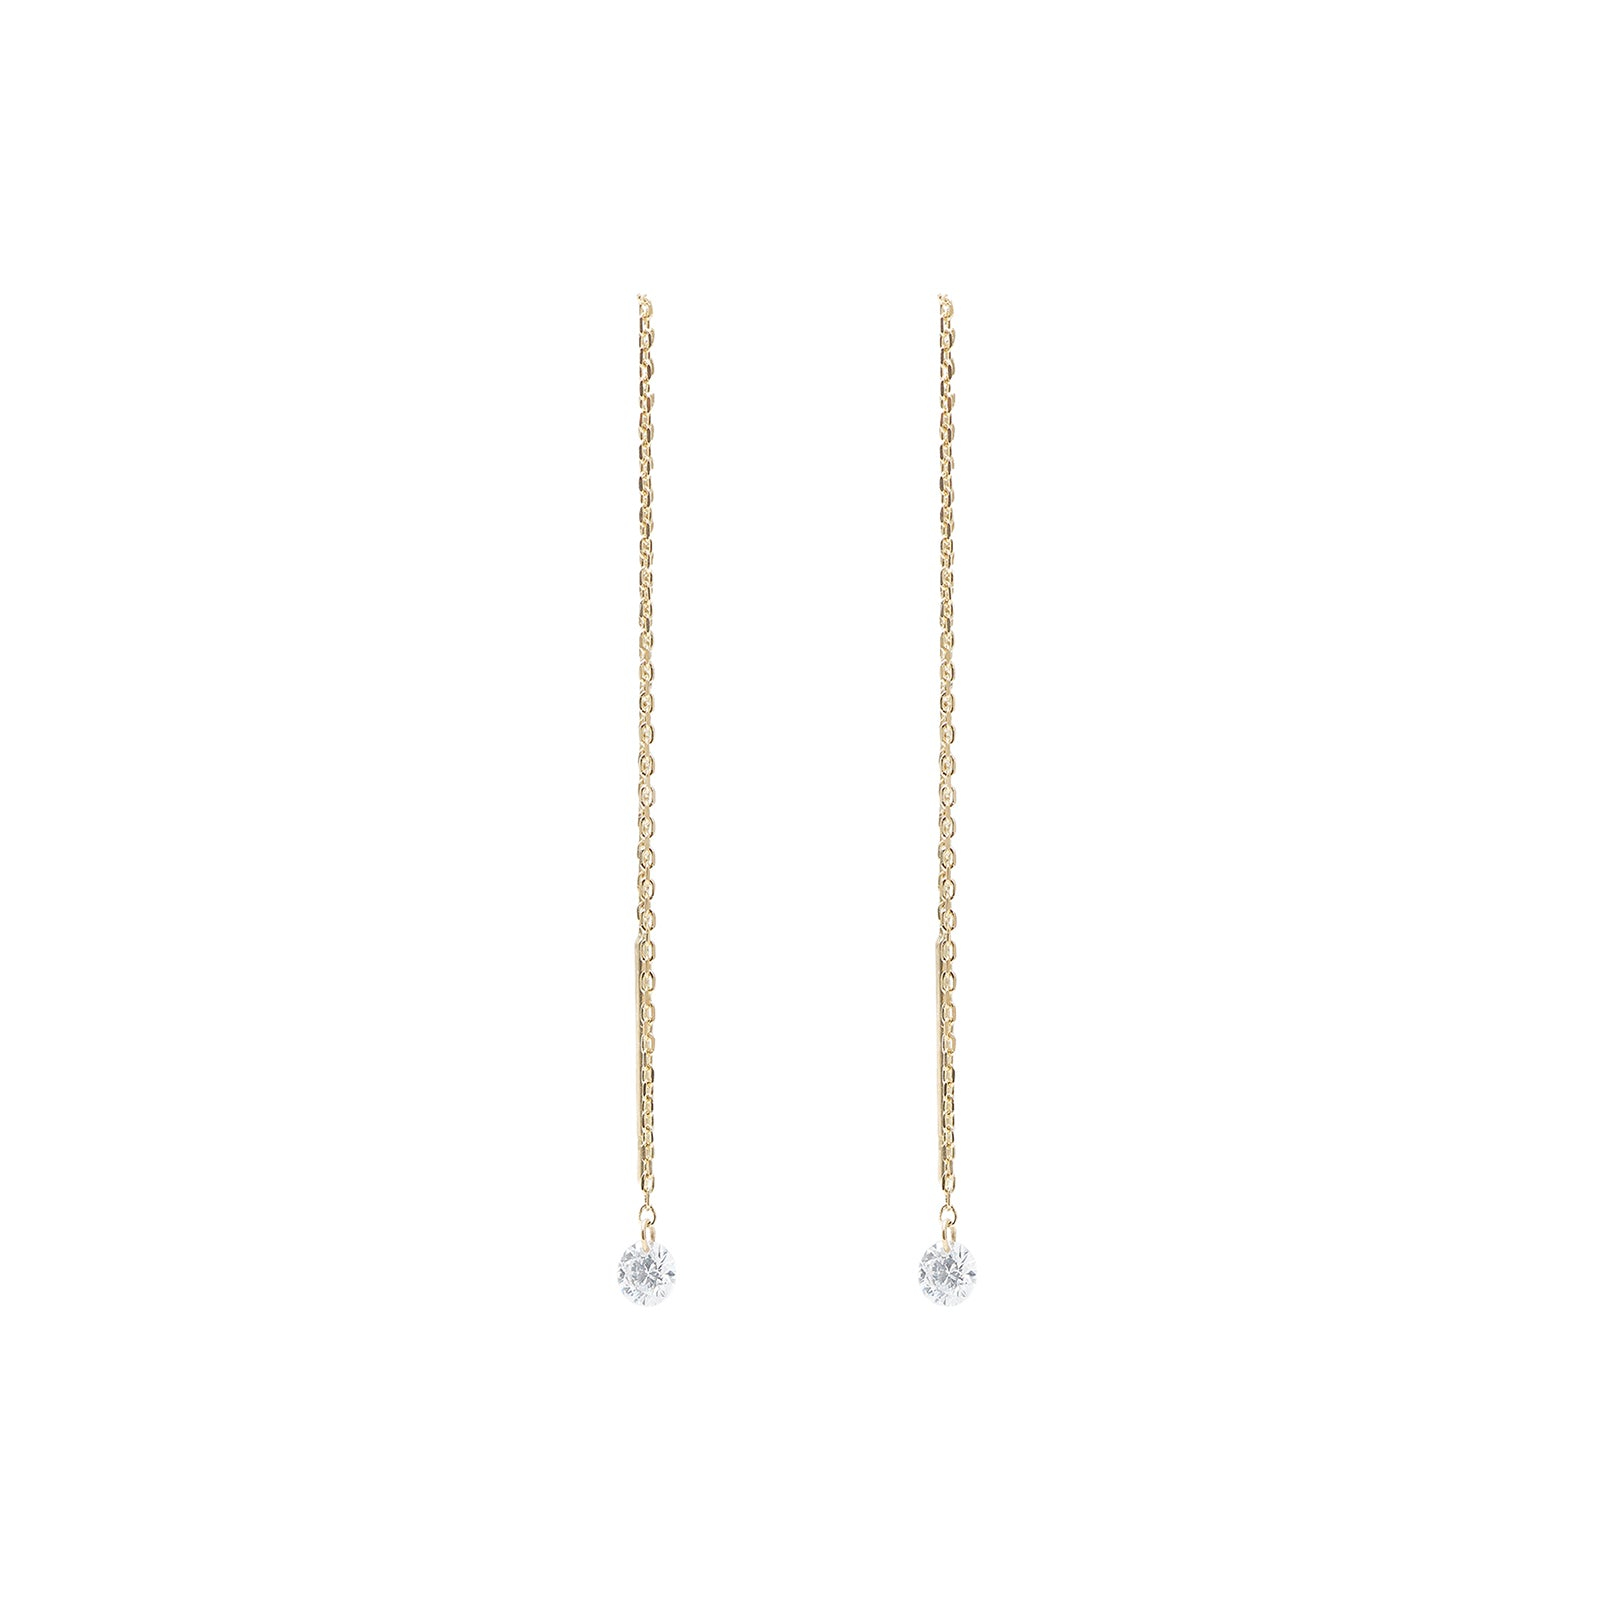 Persée Paris Chain Diamond Drop Earrings - Earrings - Broken English Jewelry